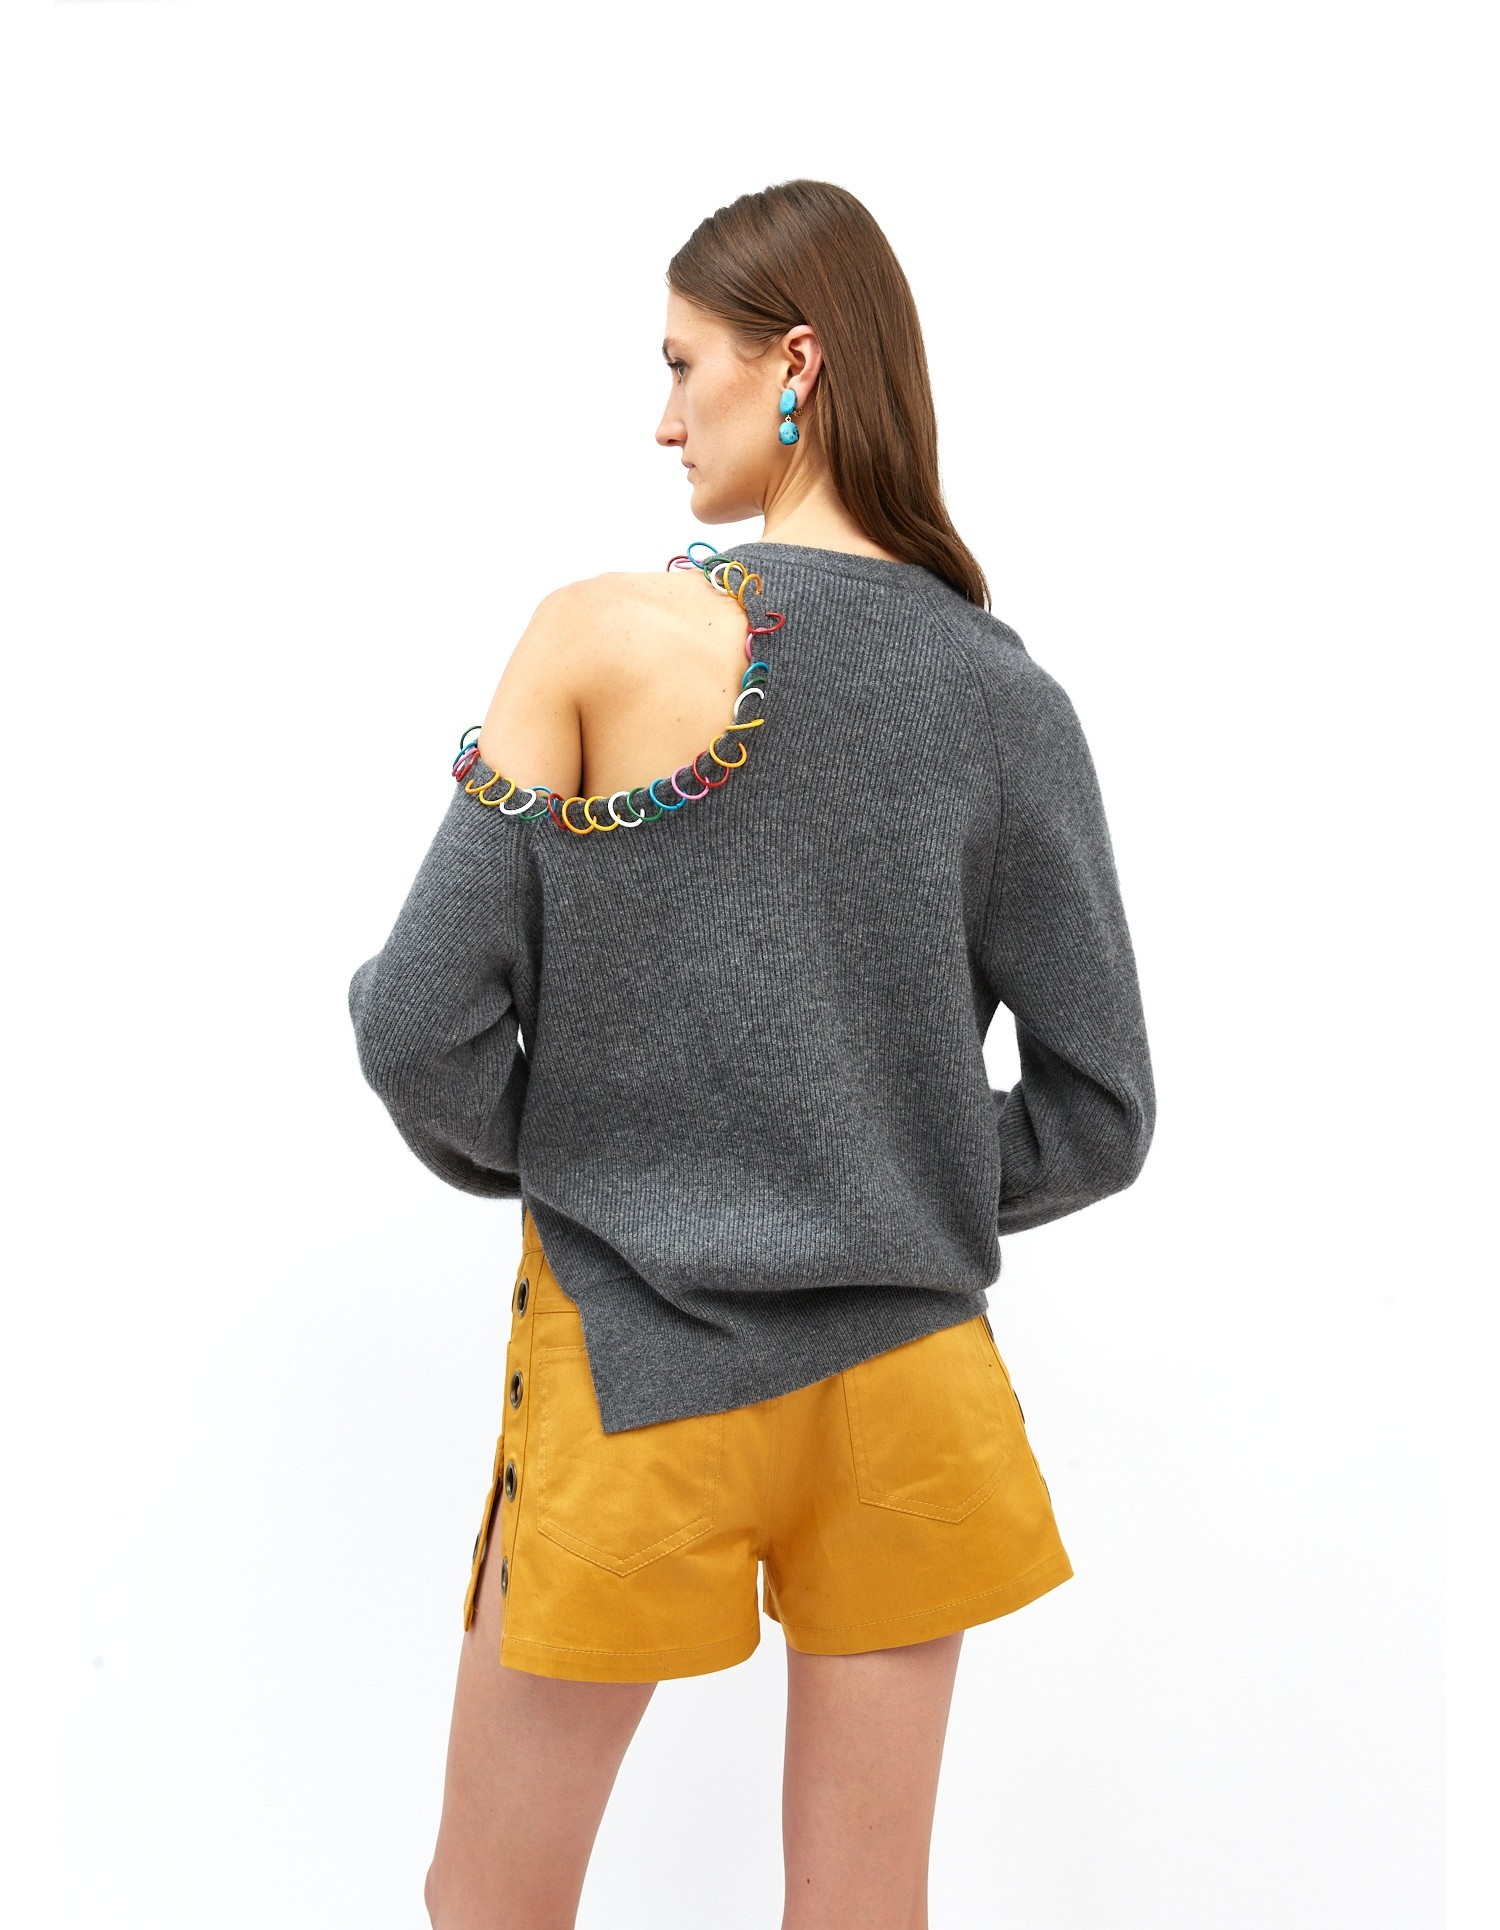 MONSE Pierced Cut Out Shoulder Sweater in Charcoal on Model Cropped Back View